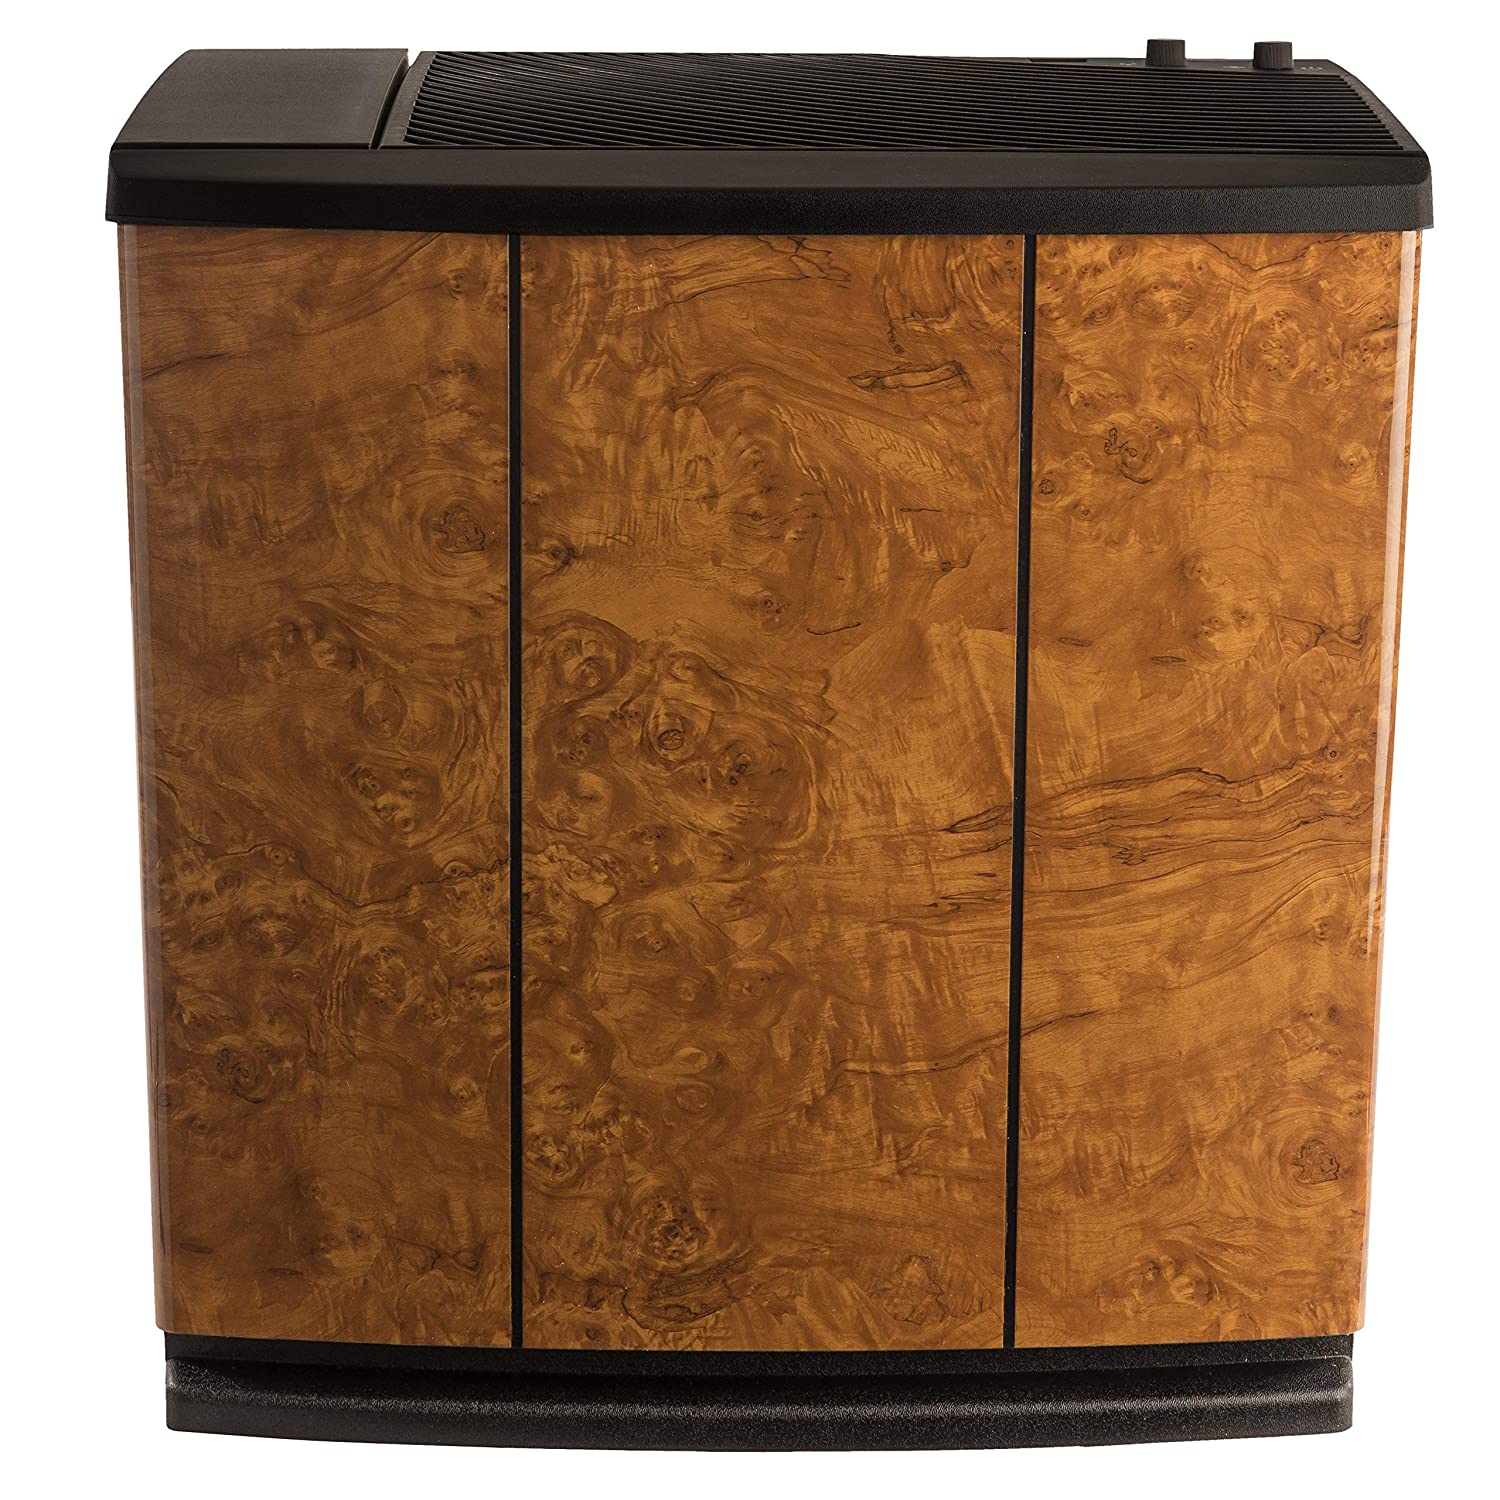 Oak Burl AIRCARE H12-400HB 3-Speed Whole-House Console-Style Evaporative Humidifier Renewed